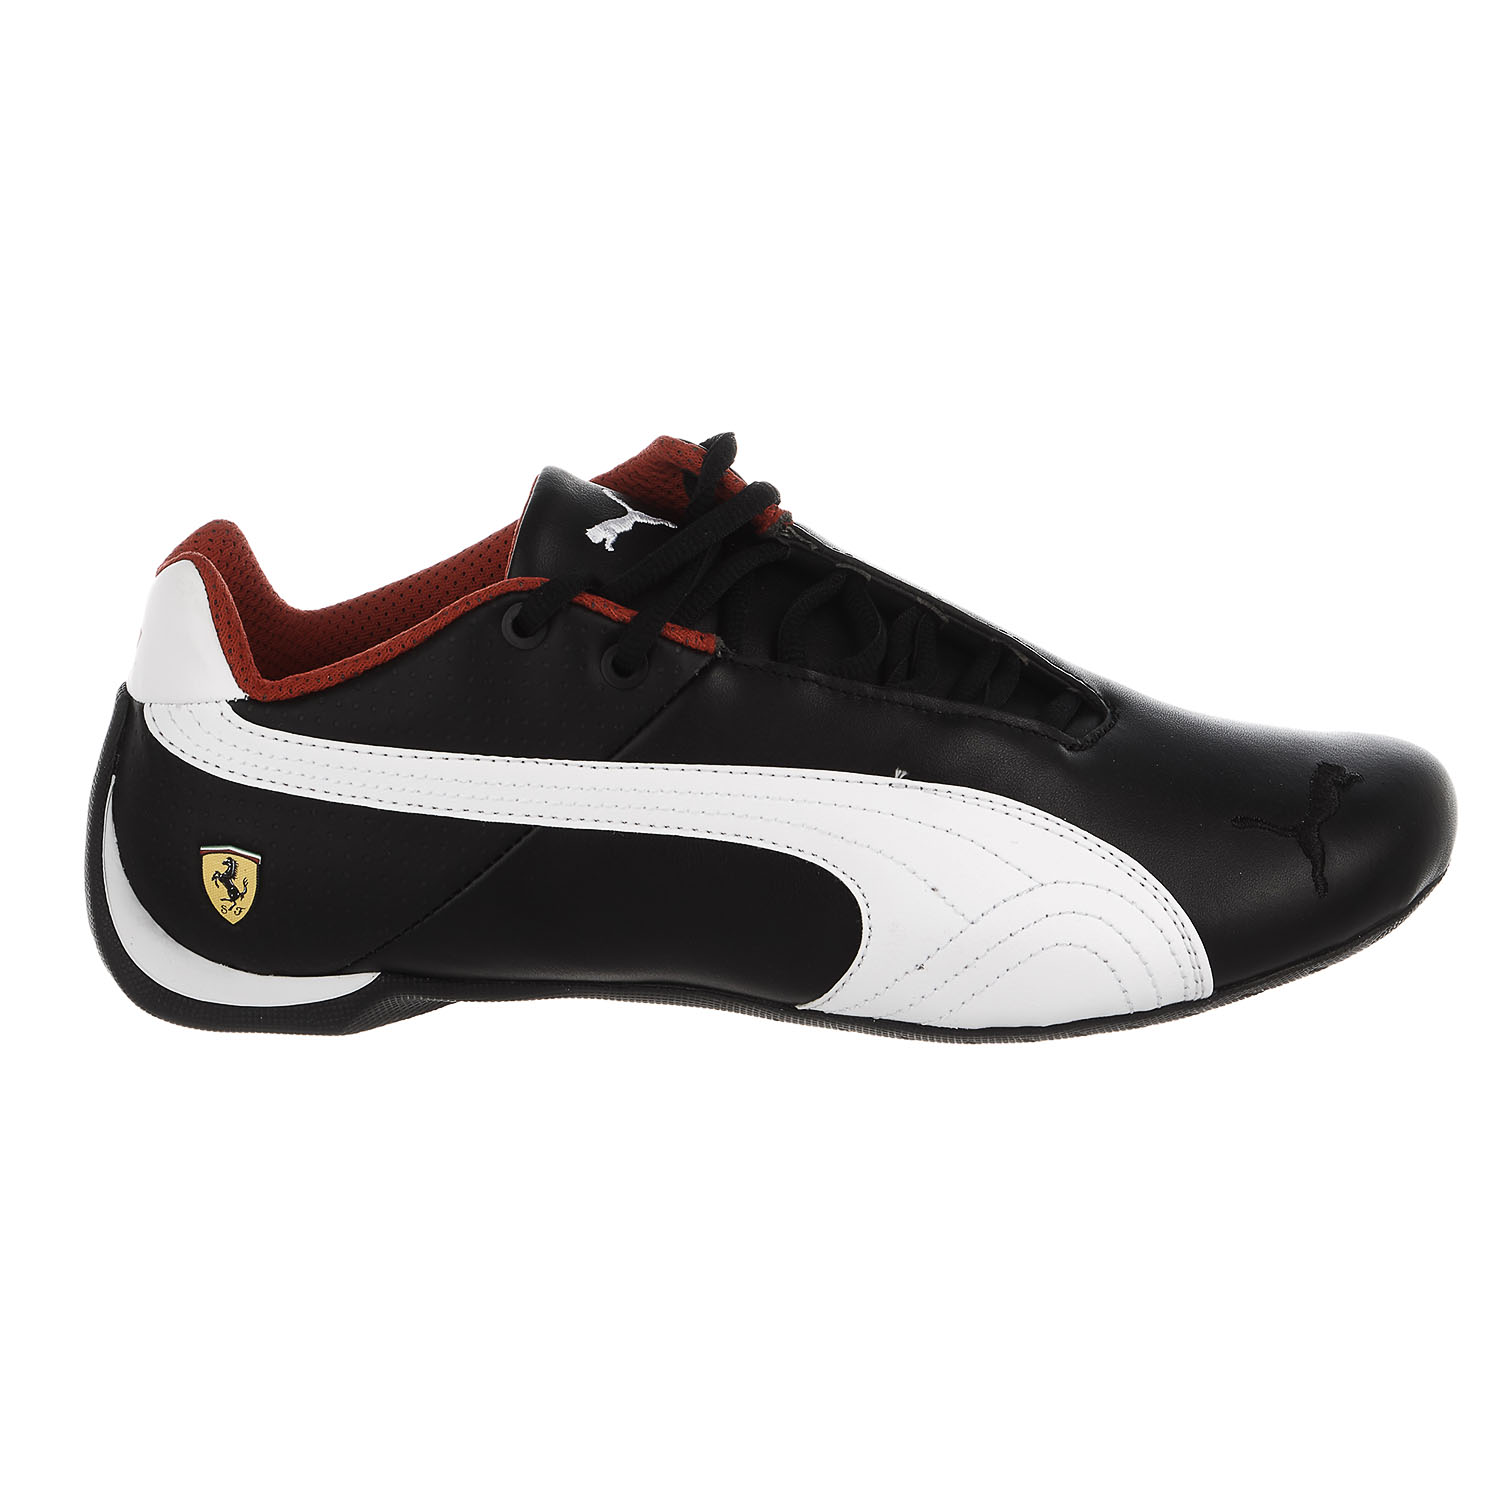 8288faf5be2 Puma Ferrari Future Cat OG Sneaker - Black White Black - Mens - 8 -  Walmart.com